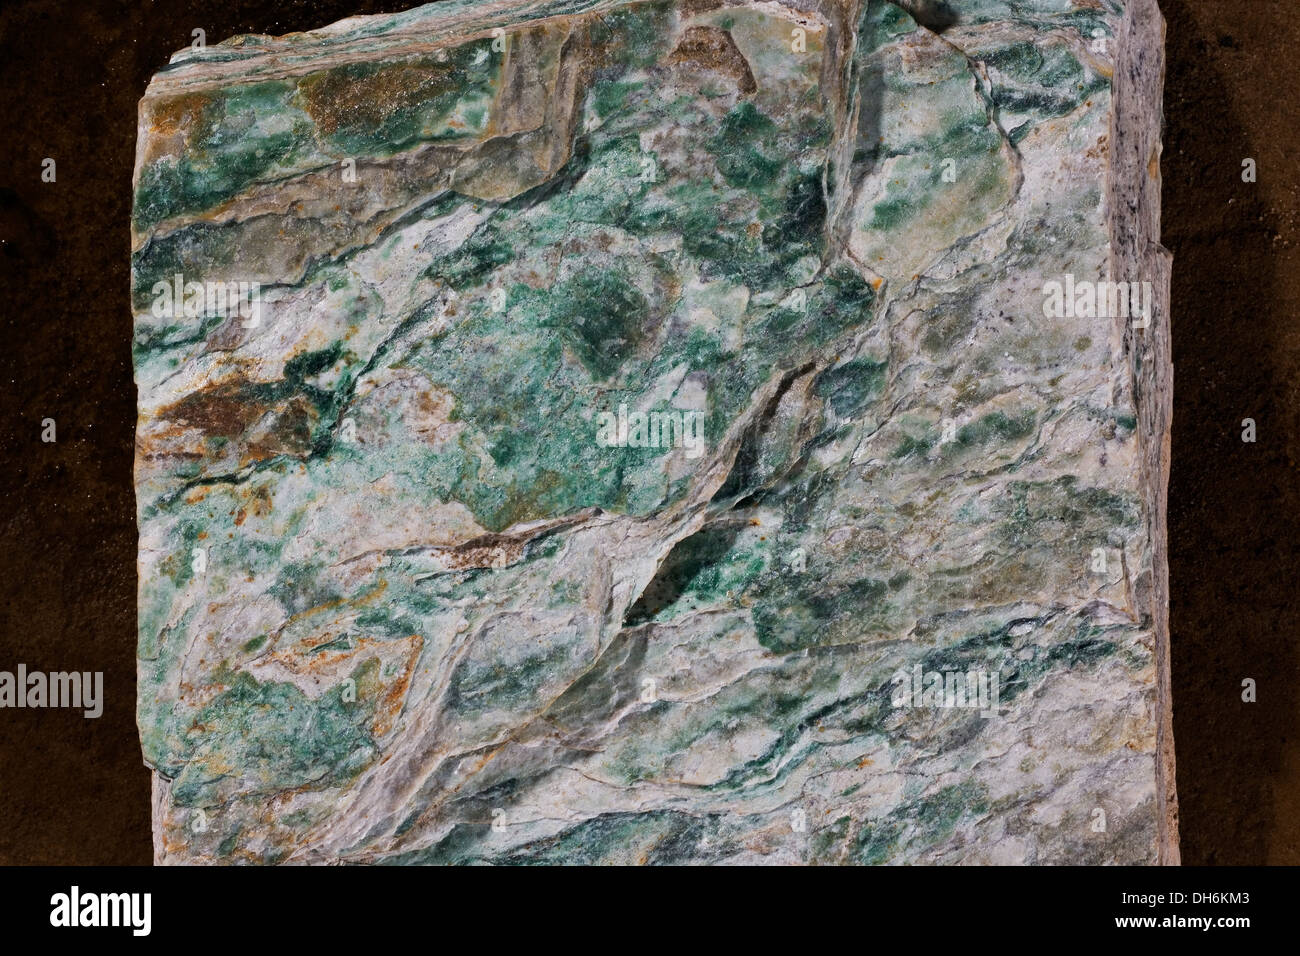 'The Felsite Unit' or green meta rhyolite. Green layering on the rock is a mica called fuchsite and is part of the gold system - Stock Image